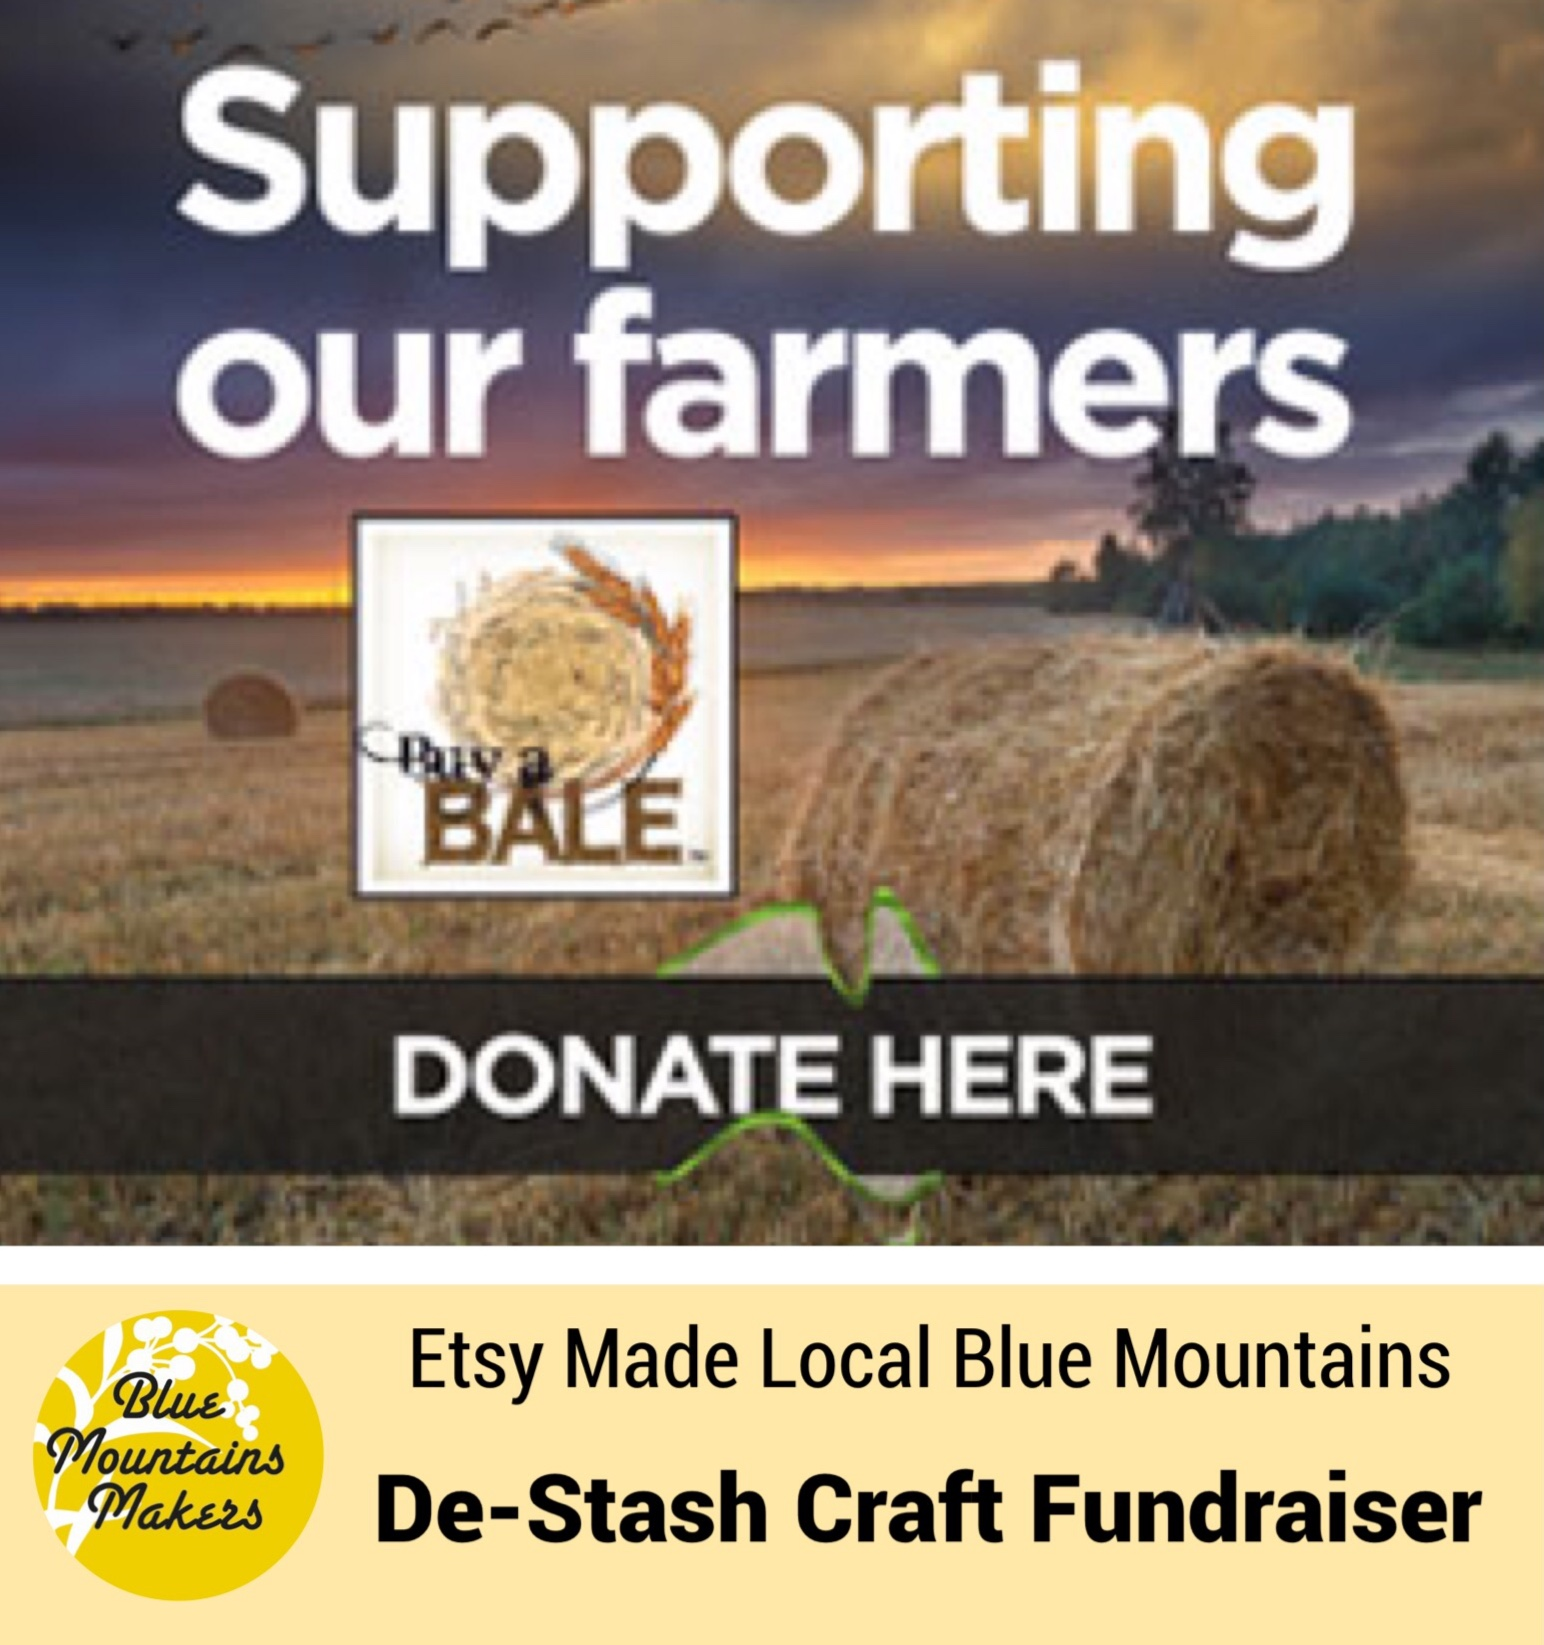 This year we are running a Craft De-stash stall to raise funds for Buy-A-Bale in aid of our farmers who are doing it tough. For a gold coin donation you can fill a paper bag with craft goodies donated by our stall holders.